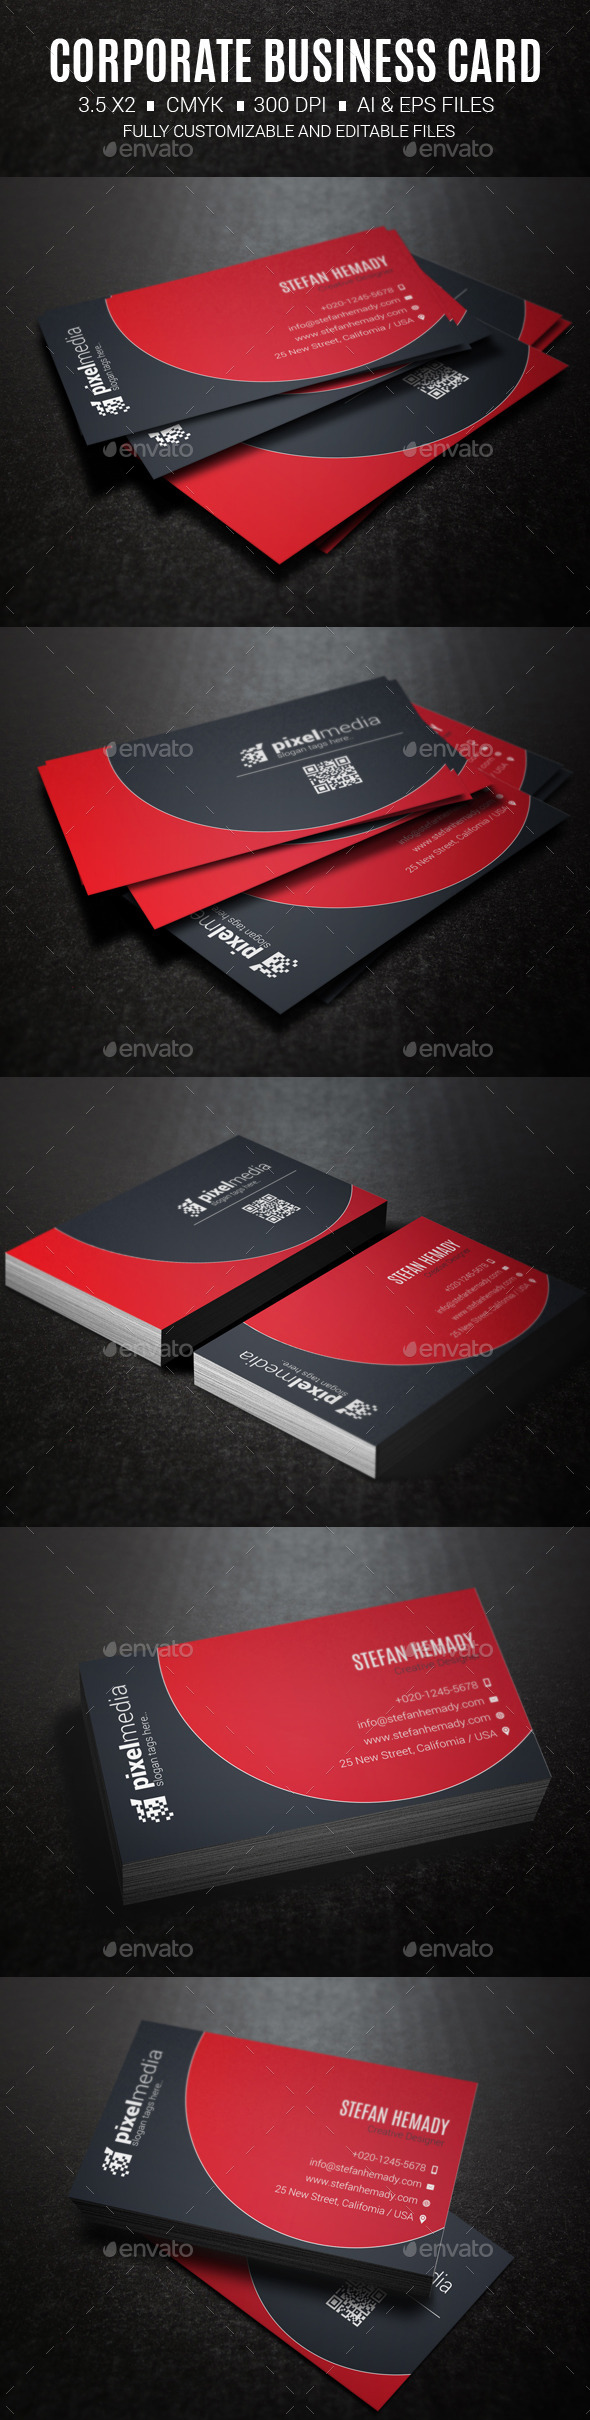 GraphicRiver Corporate Business Card 10413212